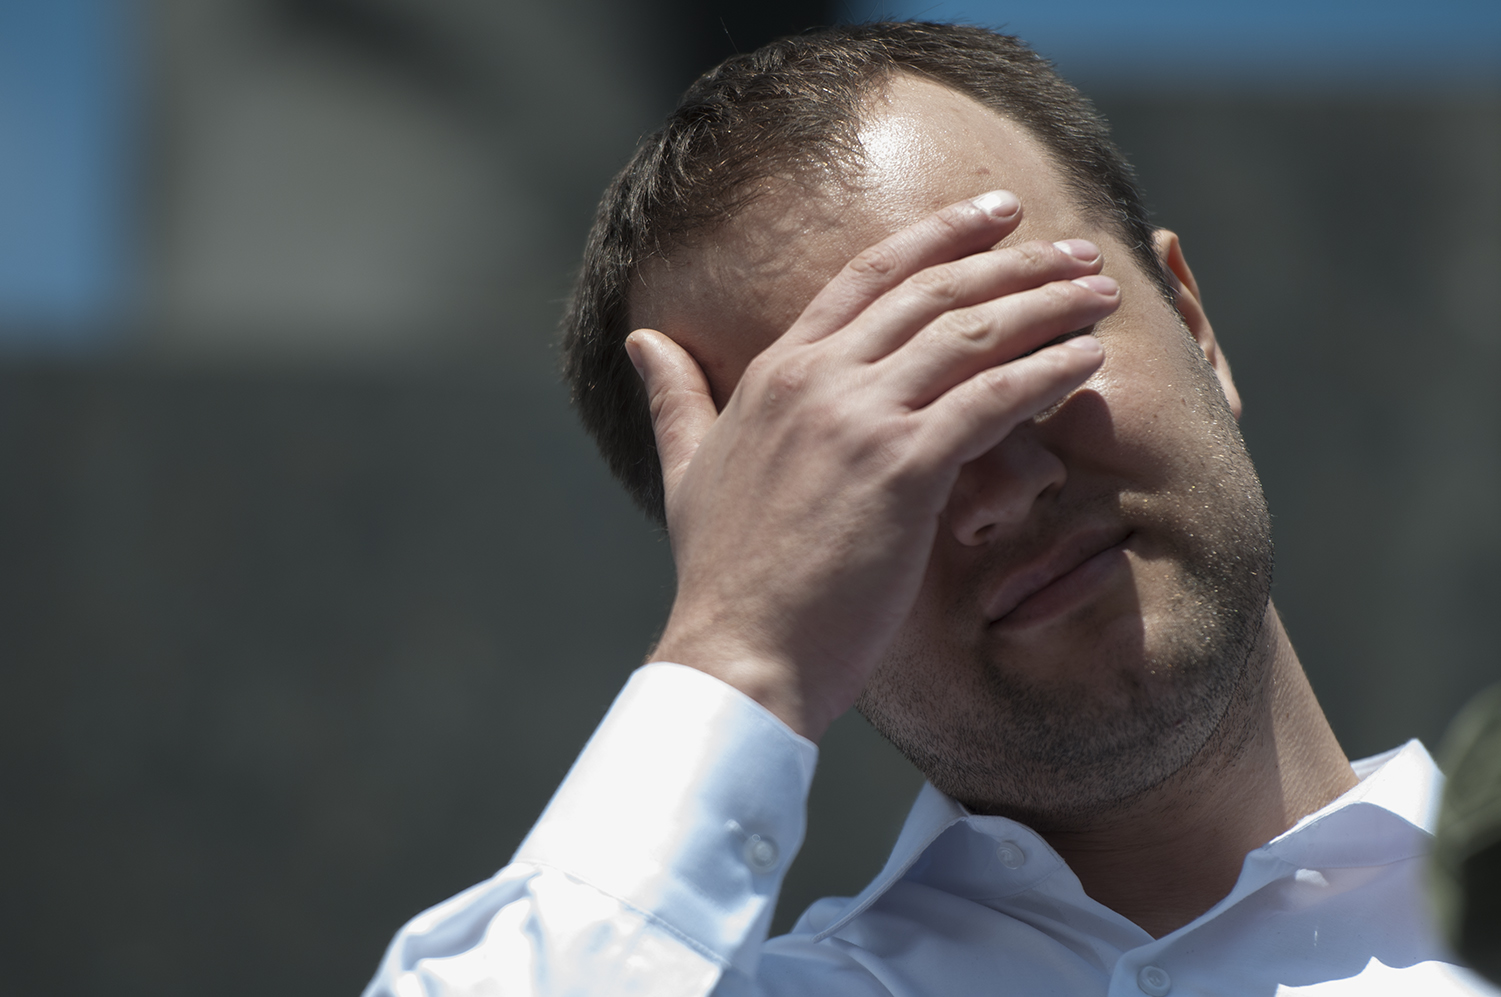 Pavel Gubarev,Governor of the Donetsk People's Republic , protecting his eyes from the bright sunlight